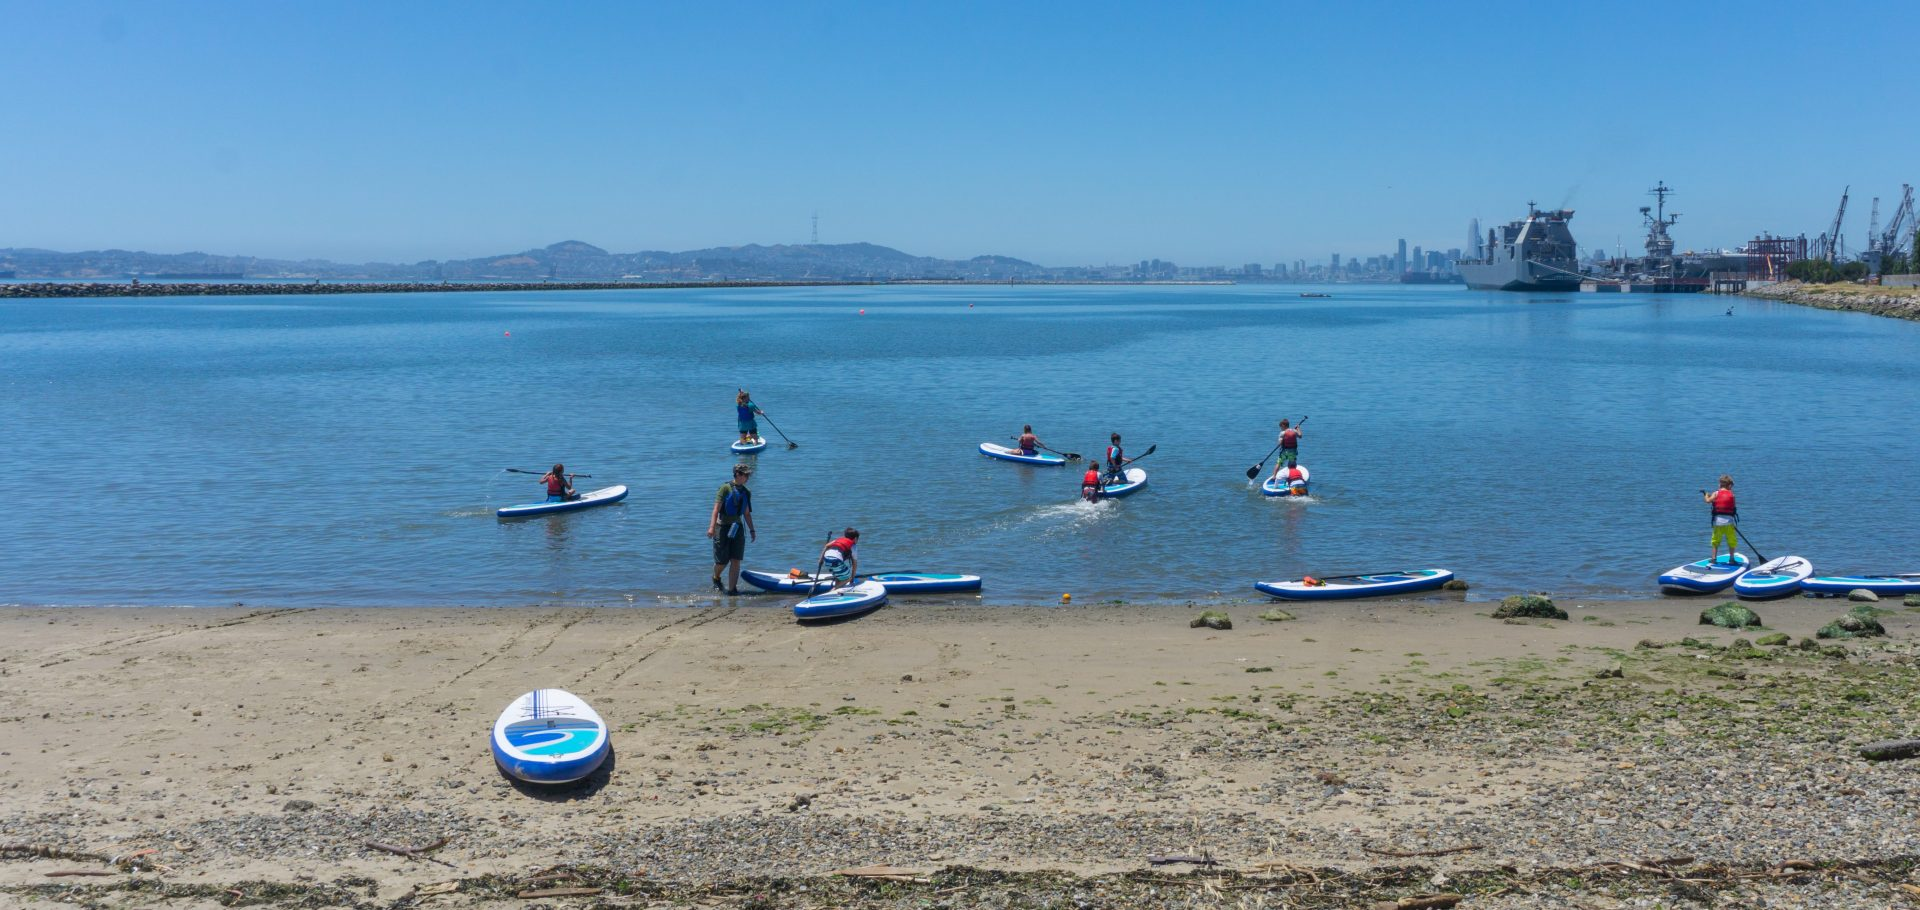 standup paddlers embarking from beach, with one board left behind on beach